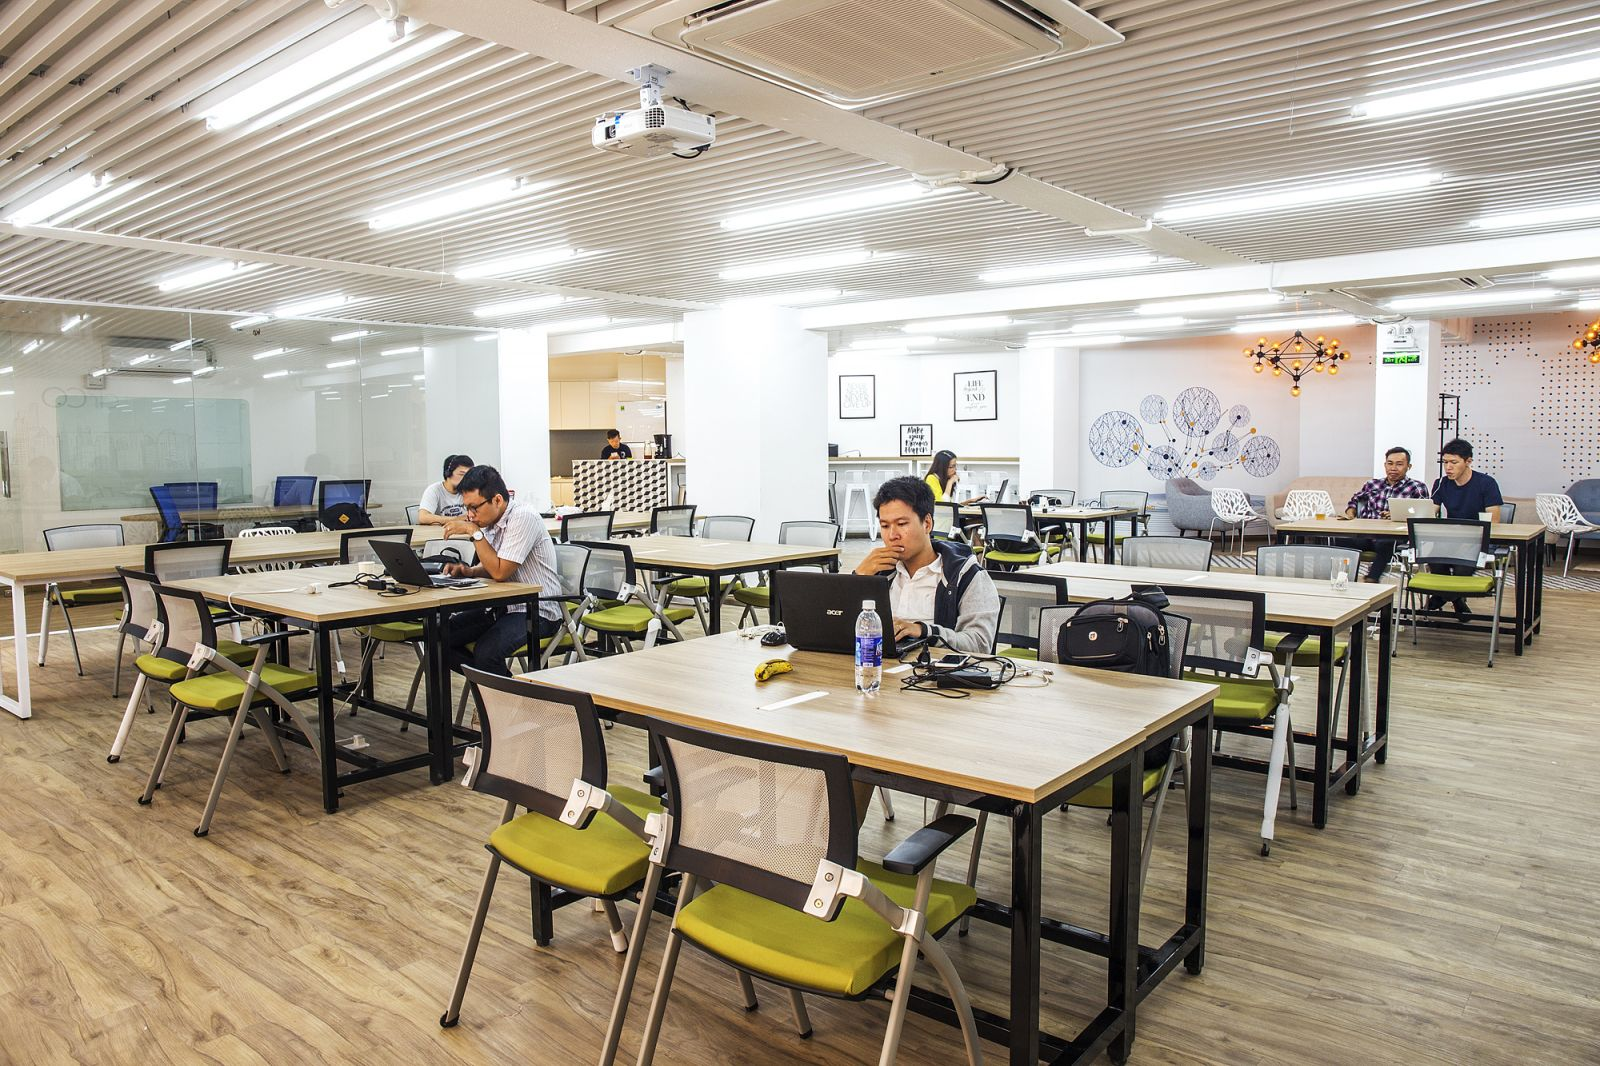 Co-working spaces evolve into community-building centres